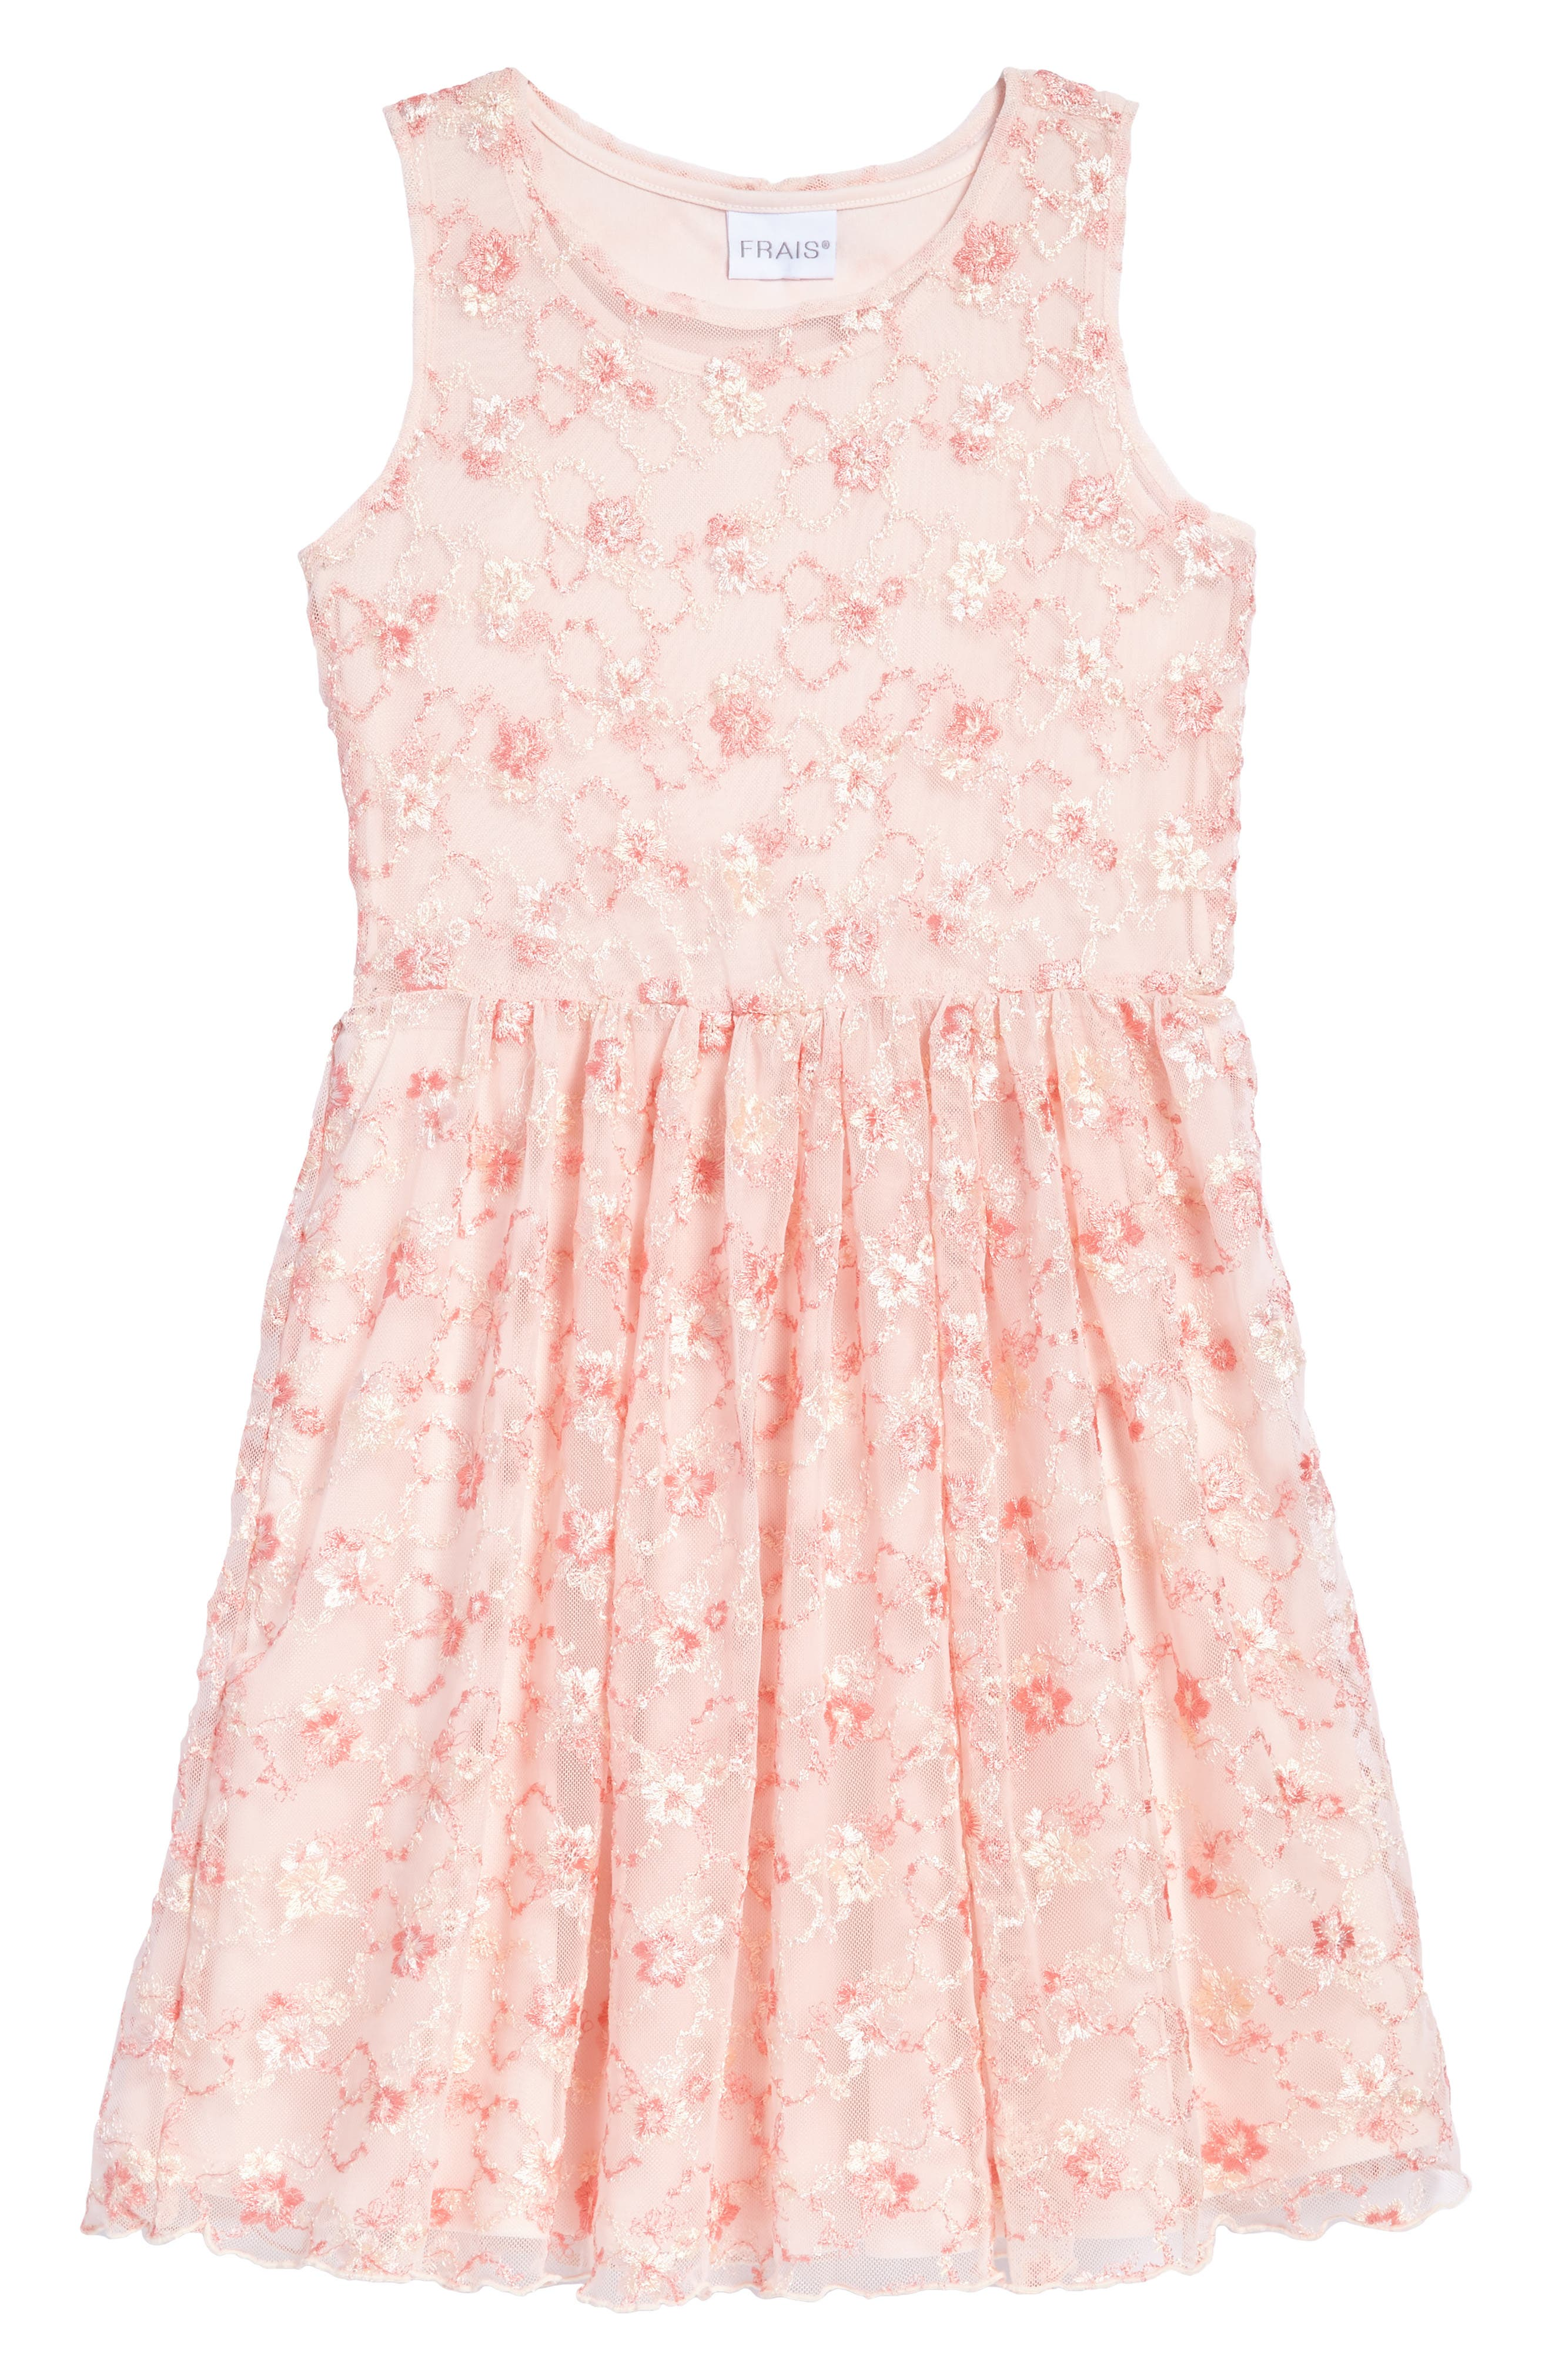 Floral Embroidered Tulle Dress,                         Main,                         color, 680